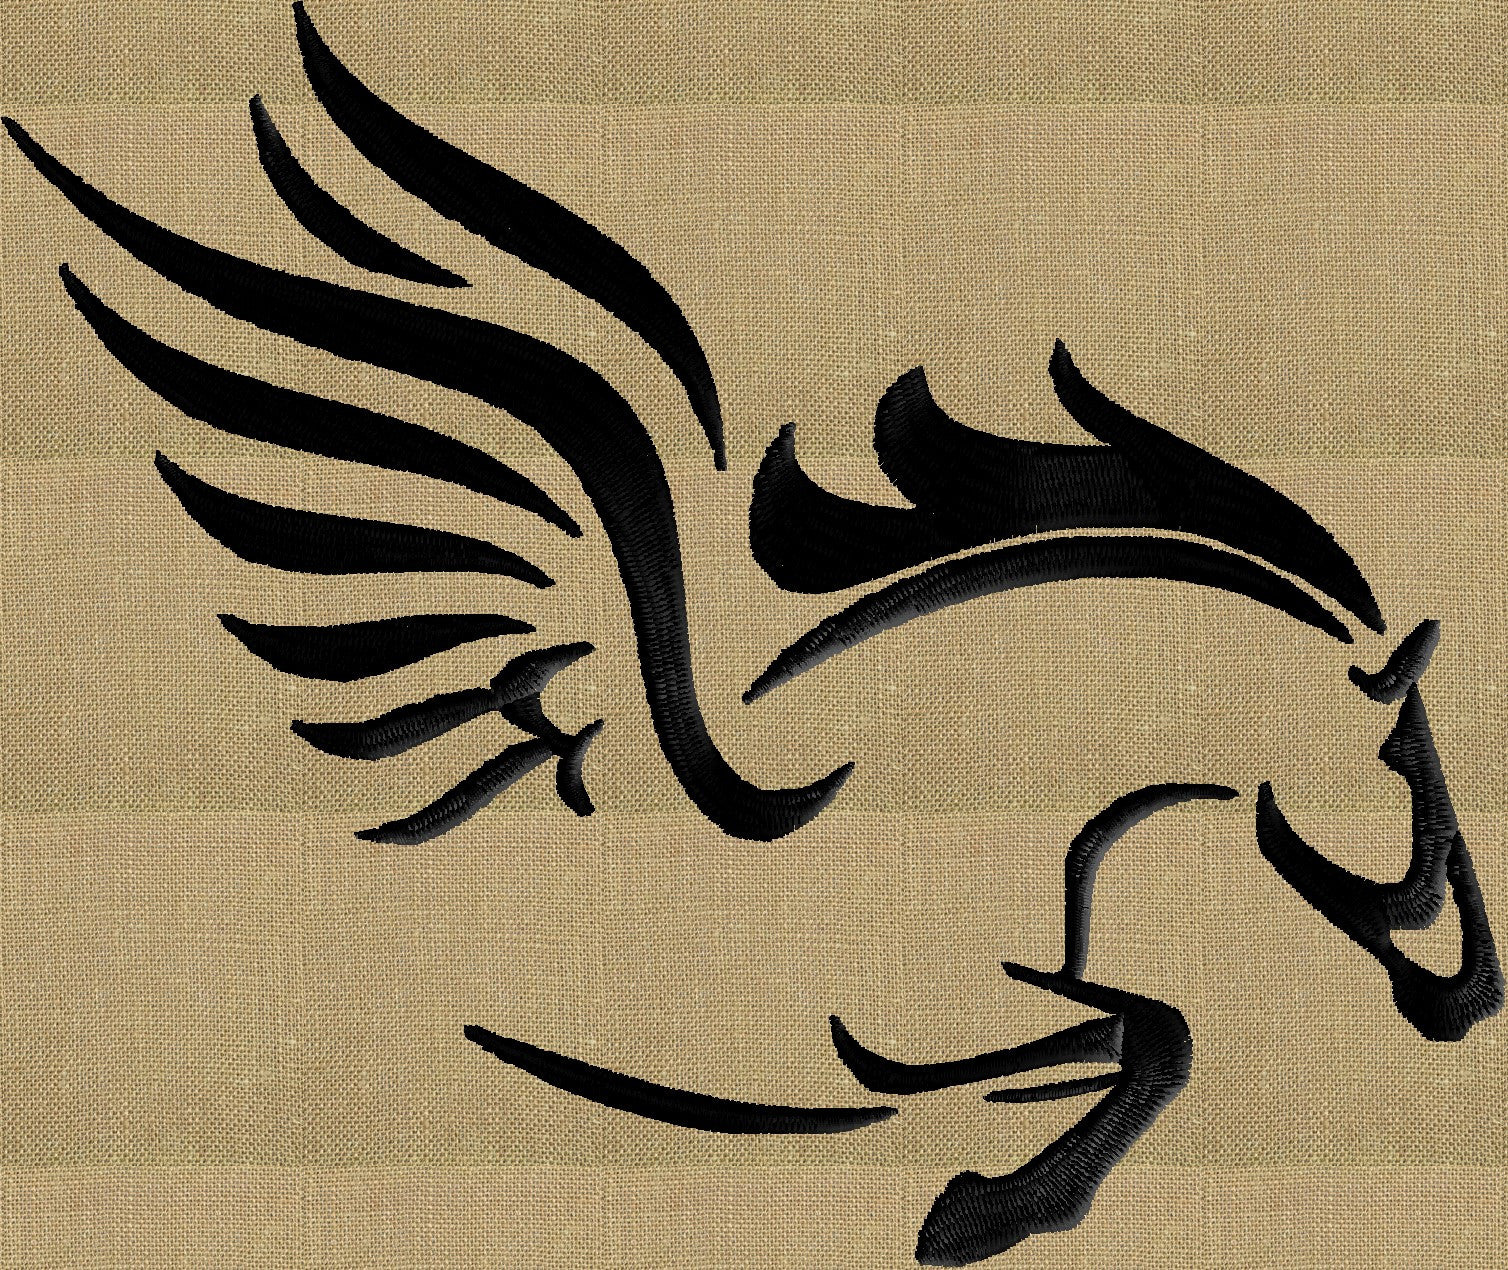 Flying Horse Pegasus Embroidery Design File Instant Download